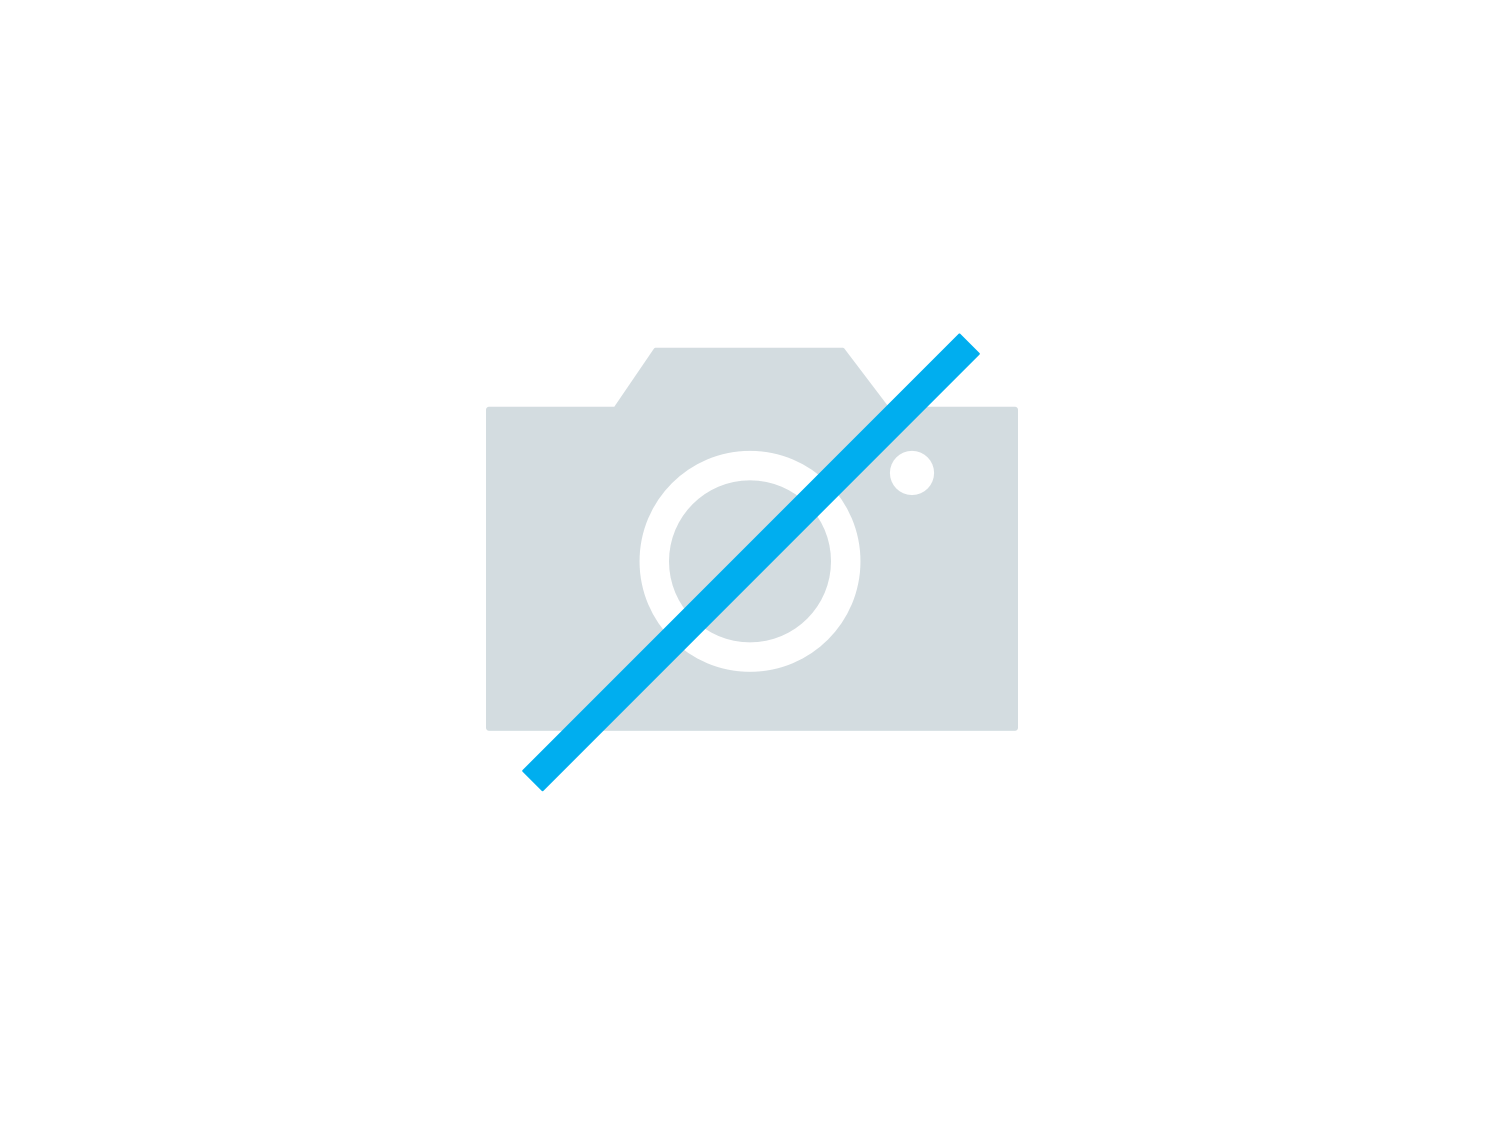 Fauteuil stof mosterd